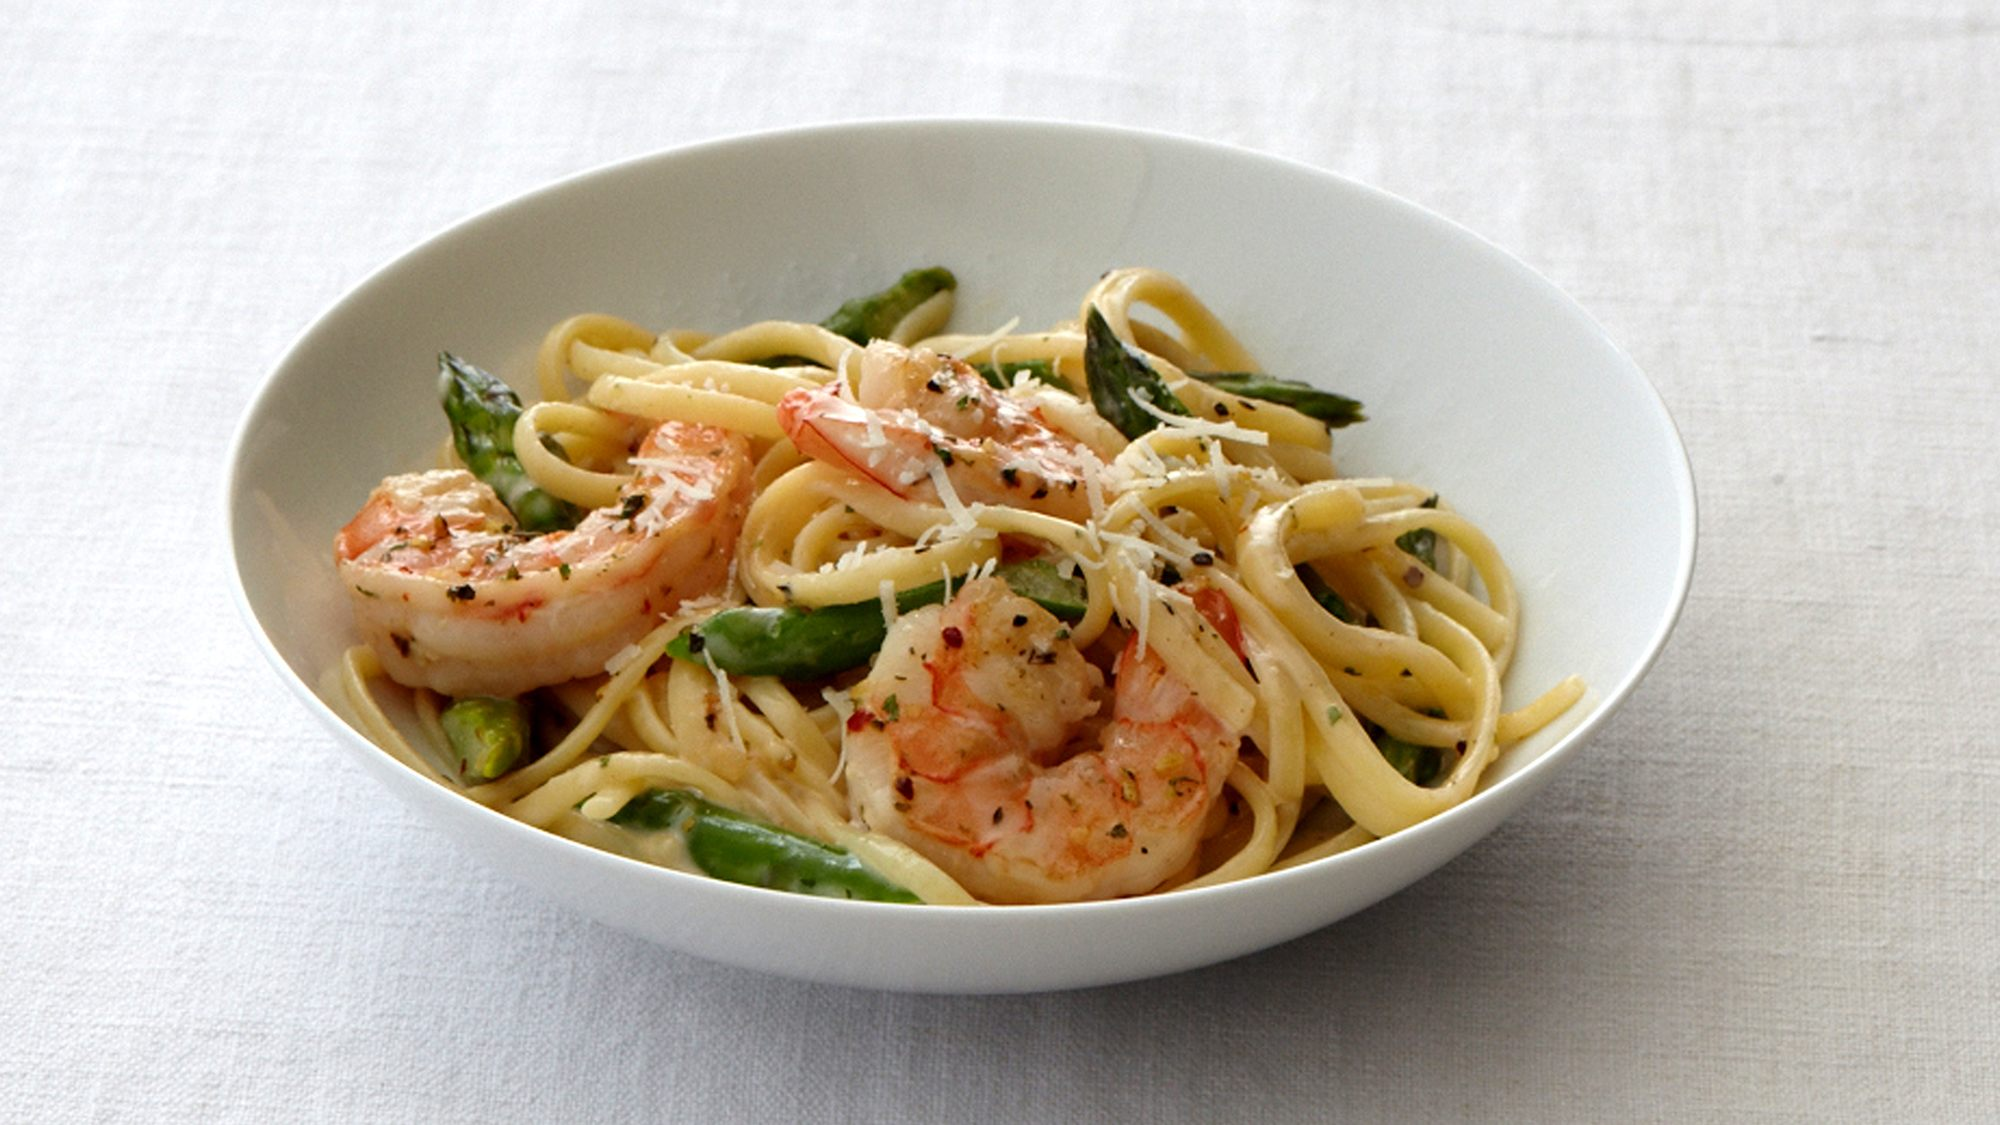 creamy-linguine-with-shrimp-and-asparagus.jpg